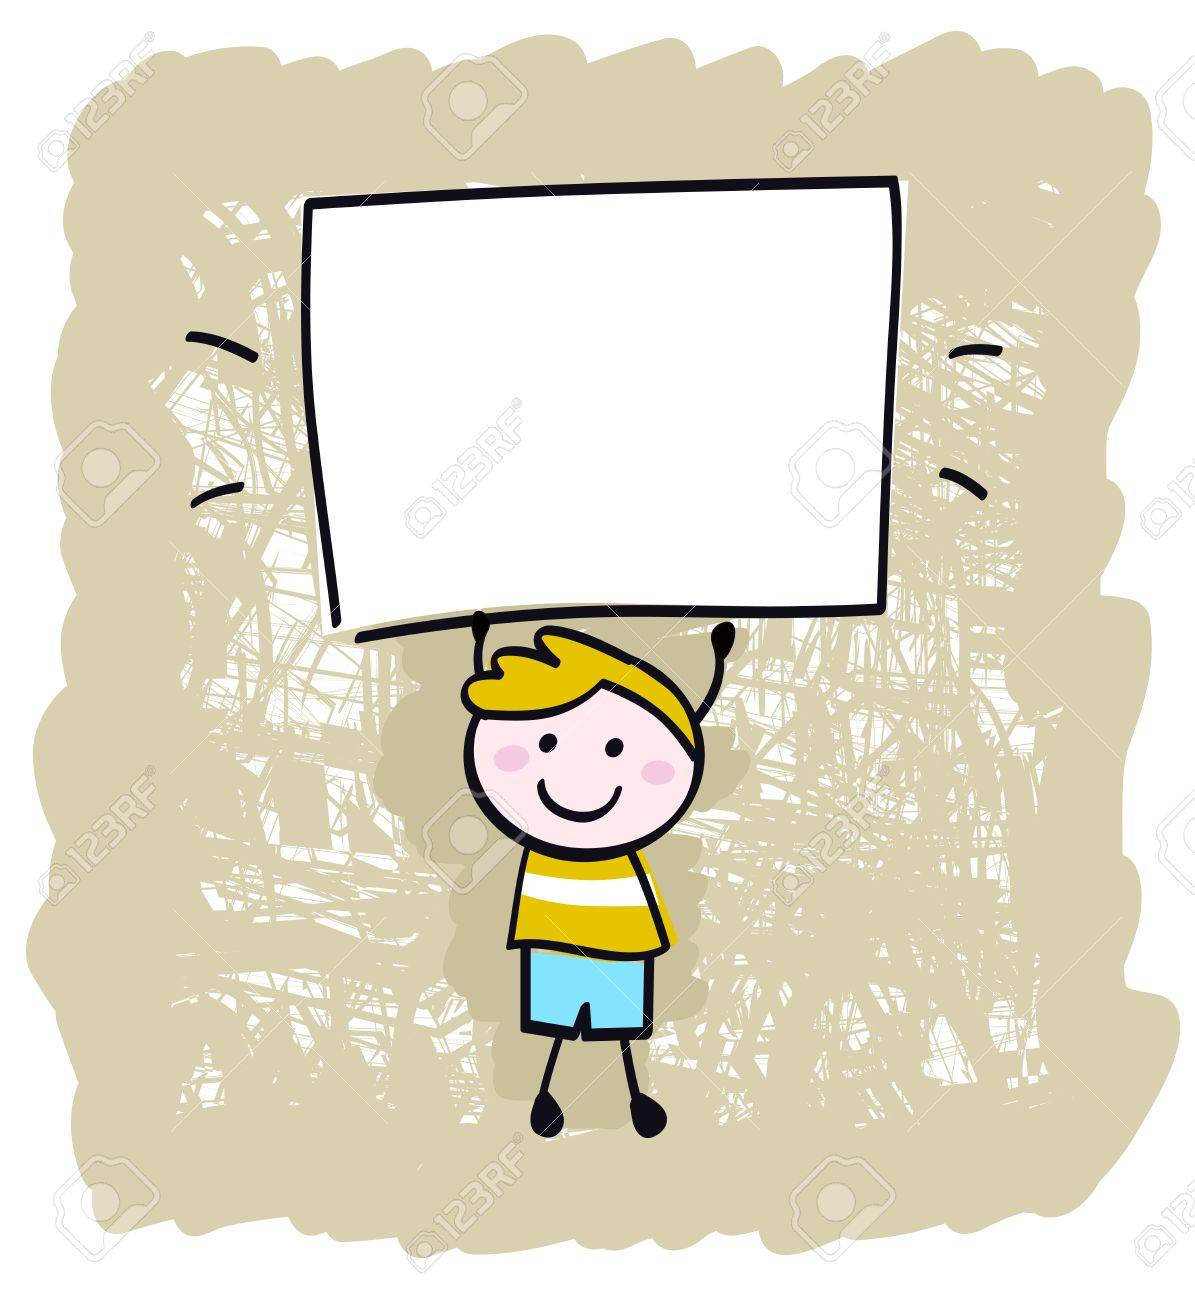 Cute happy boy in retro style holding blank banner sign - vector illustration. Stock Vector - 10445366